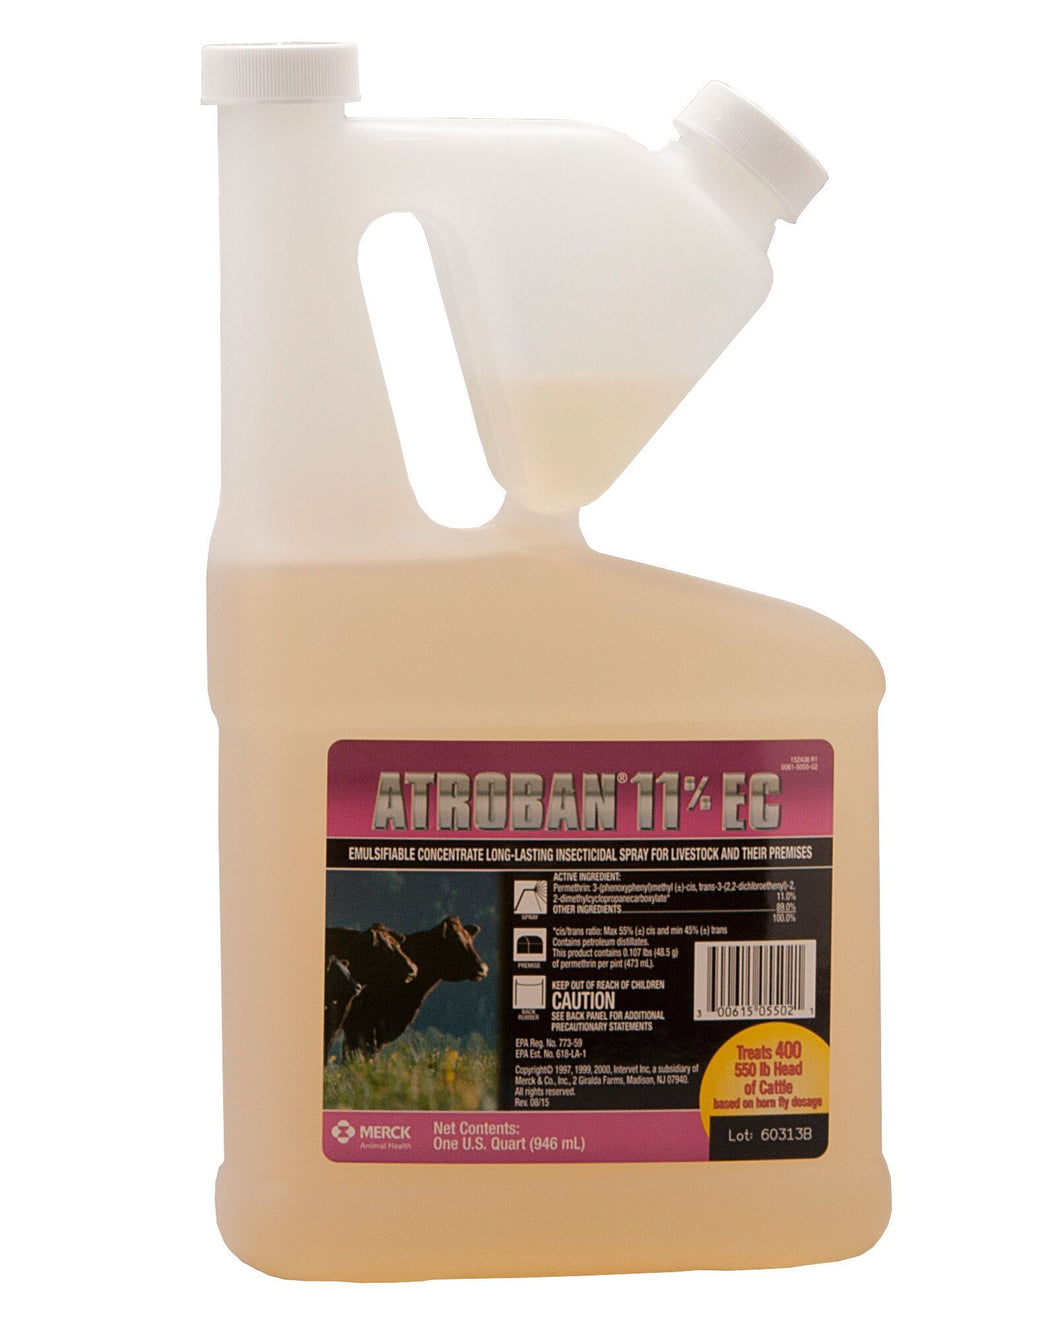 Atroban 11% EC (Emulsifiable Concentrate) Insecticide Spray - Animal Health Express